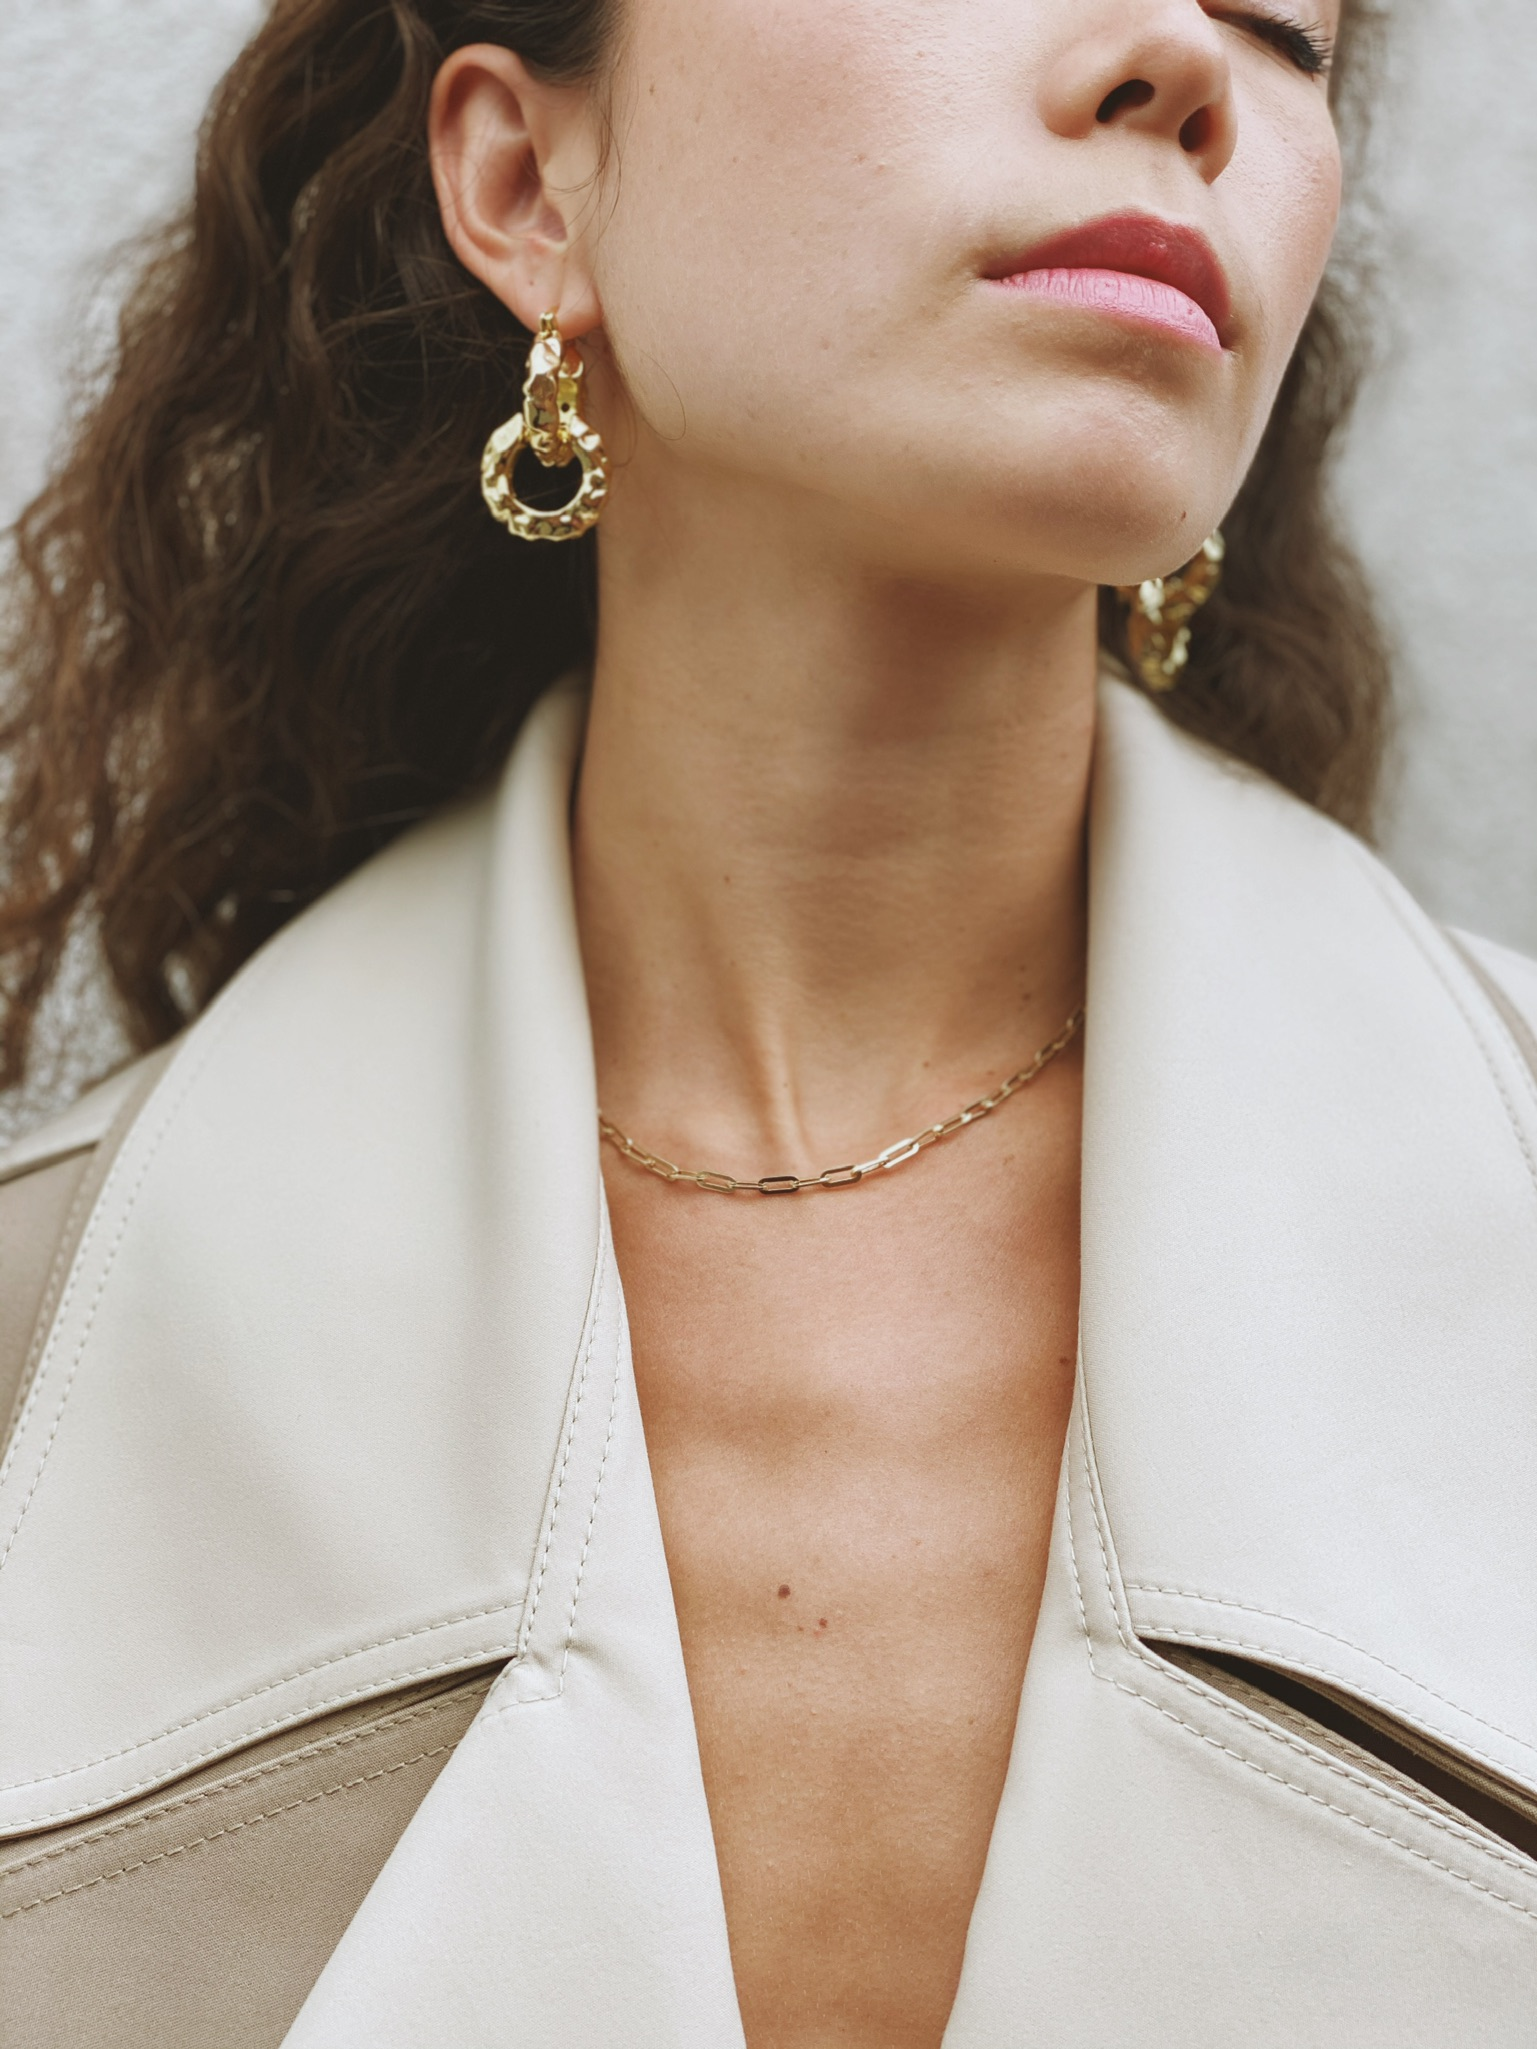 Ralph Necklace - Gold by Emili on curated-crowd.com